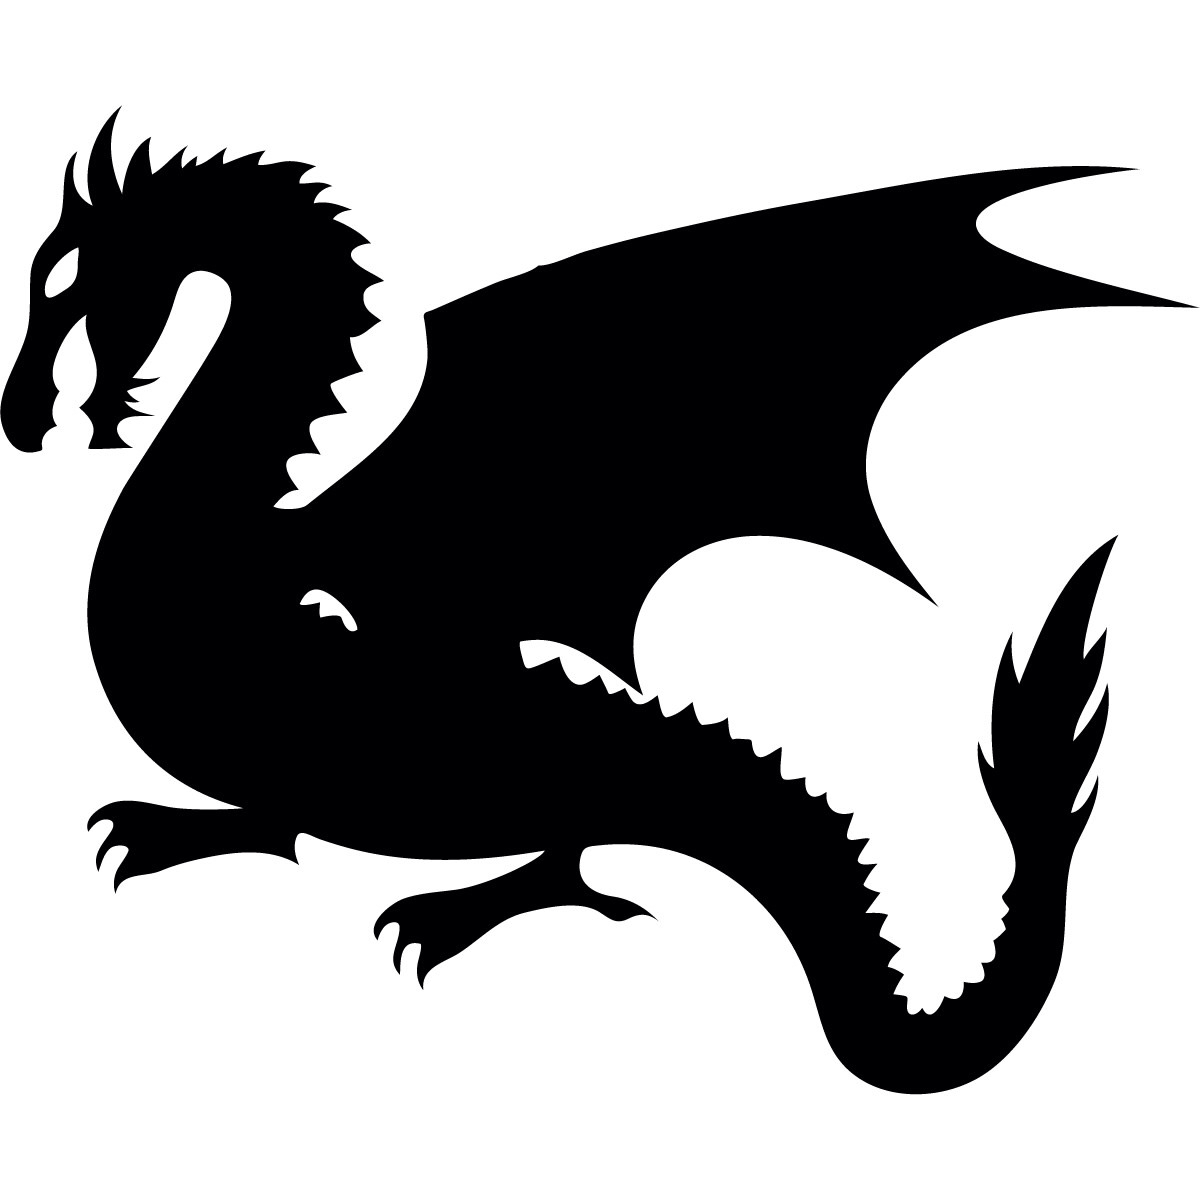 1200x1200 Silhouette Dragon Game Of Thrones Silhouette